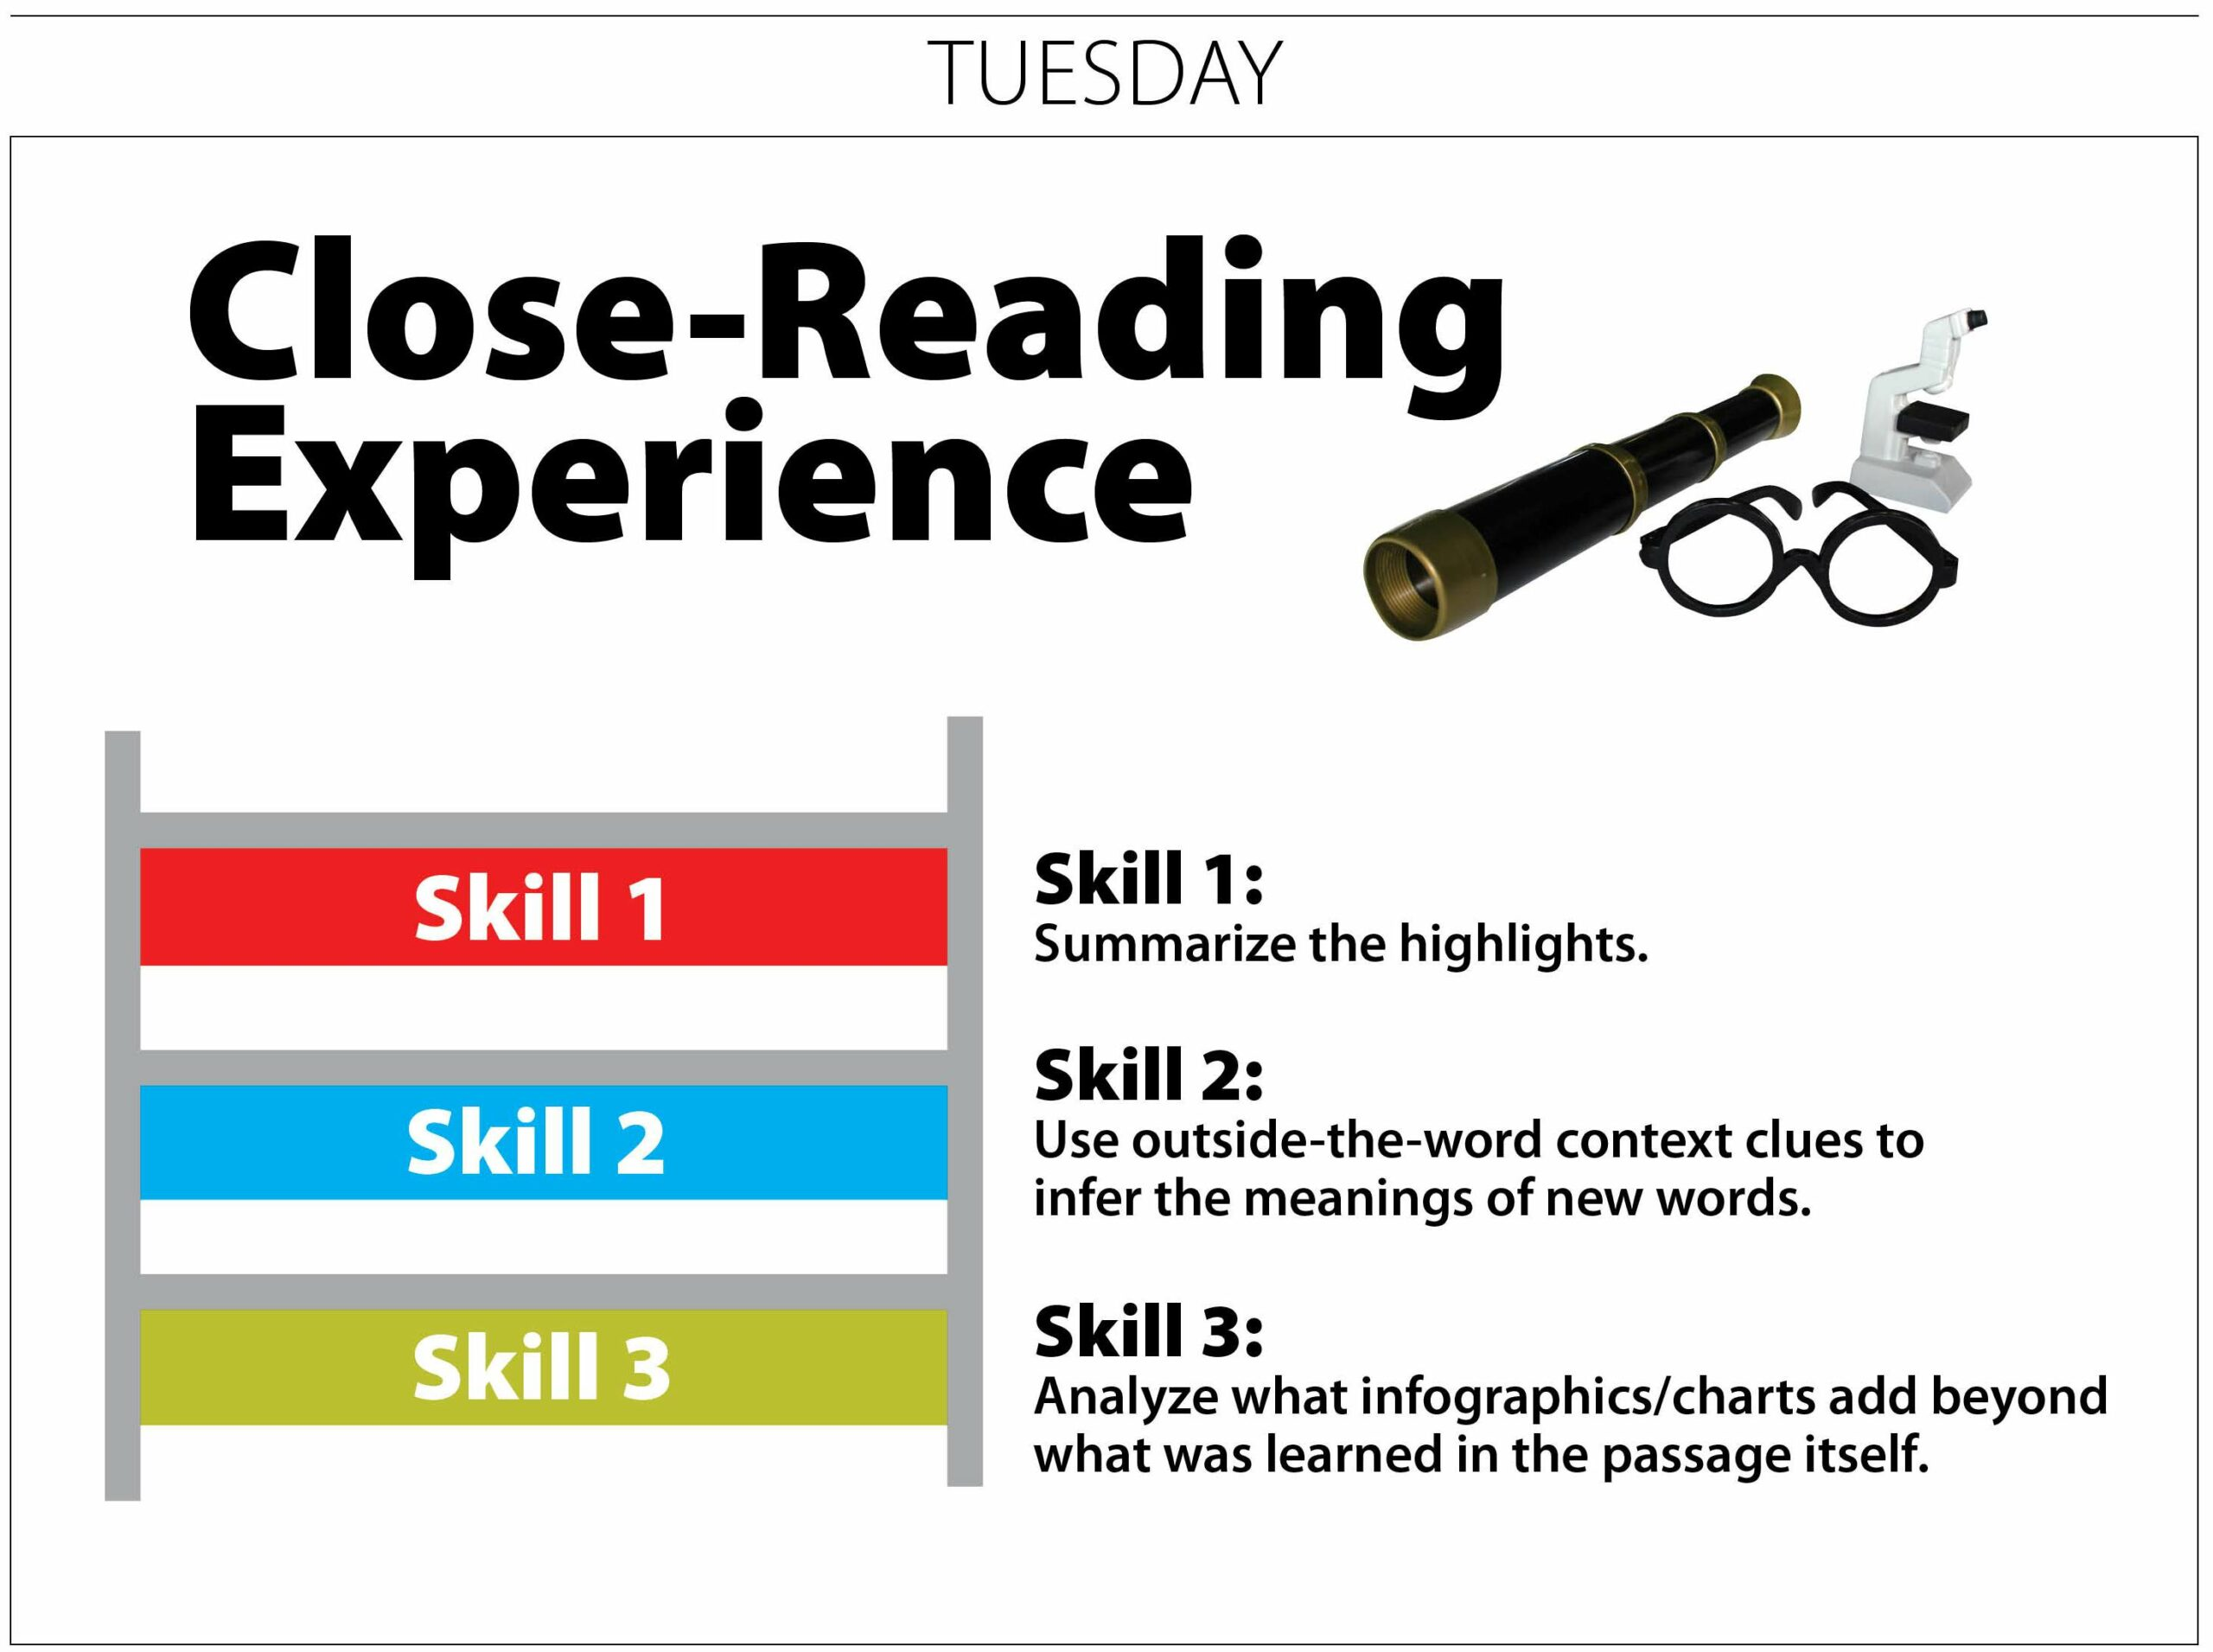 Tuesday - Close Reading Experience